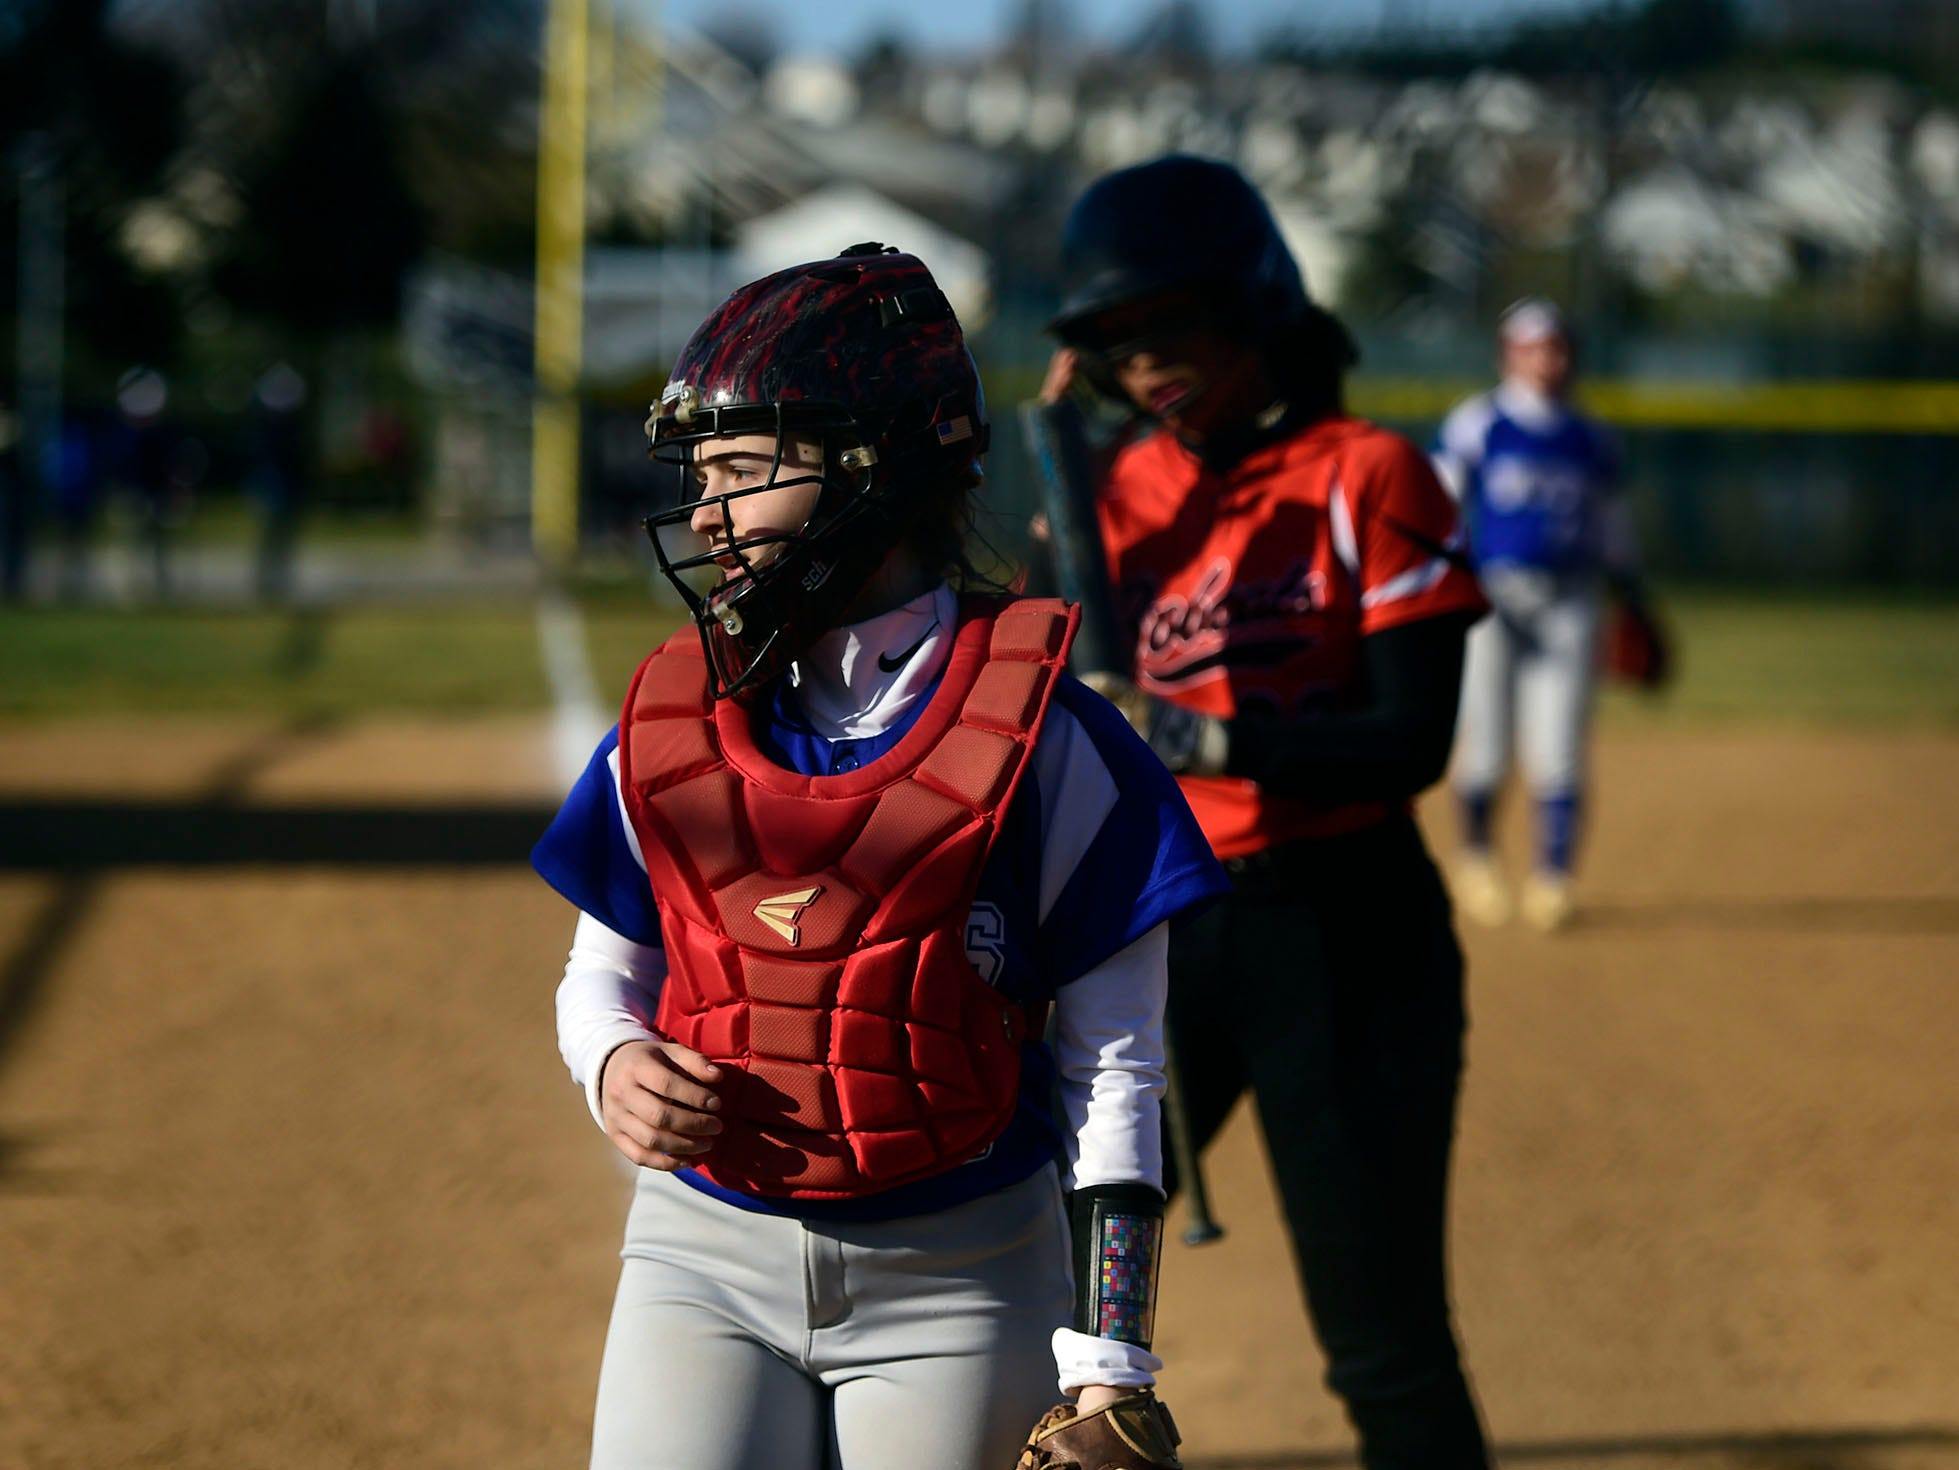 Spring Grove catcher Olivia Lillich watches a pop fly sail over the back stop during the Rockets' 19-14 victory against Northeastern Wednesday, April 3, 2019.